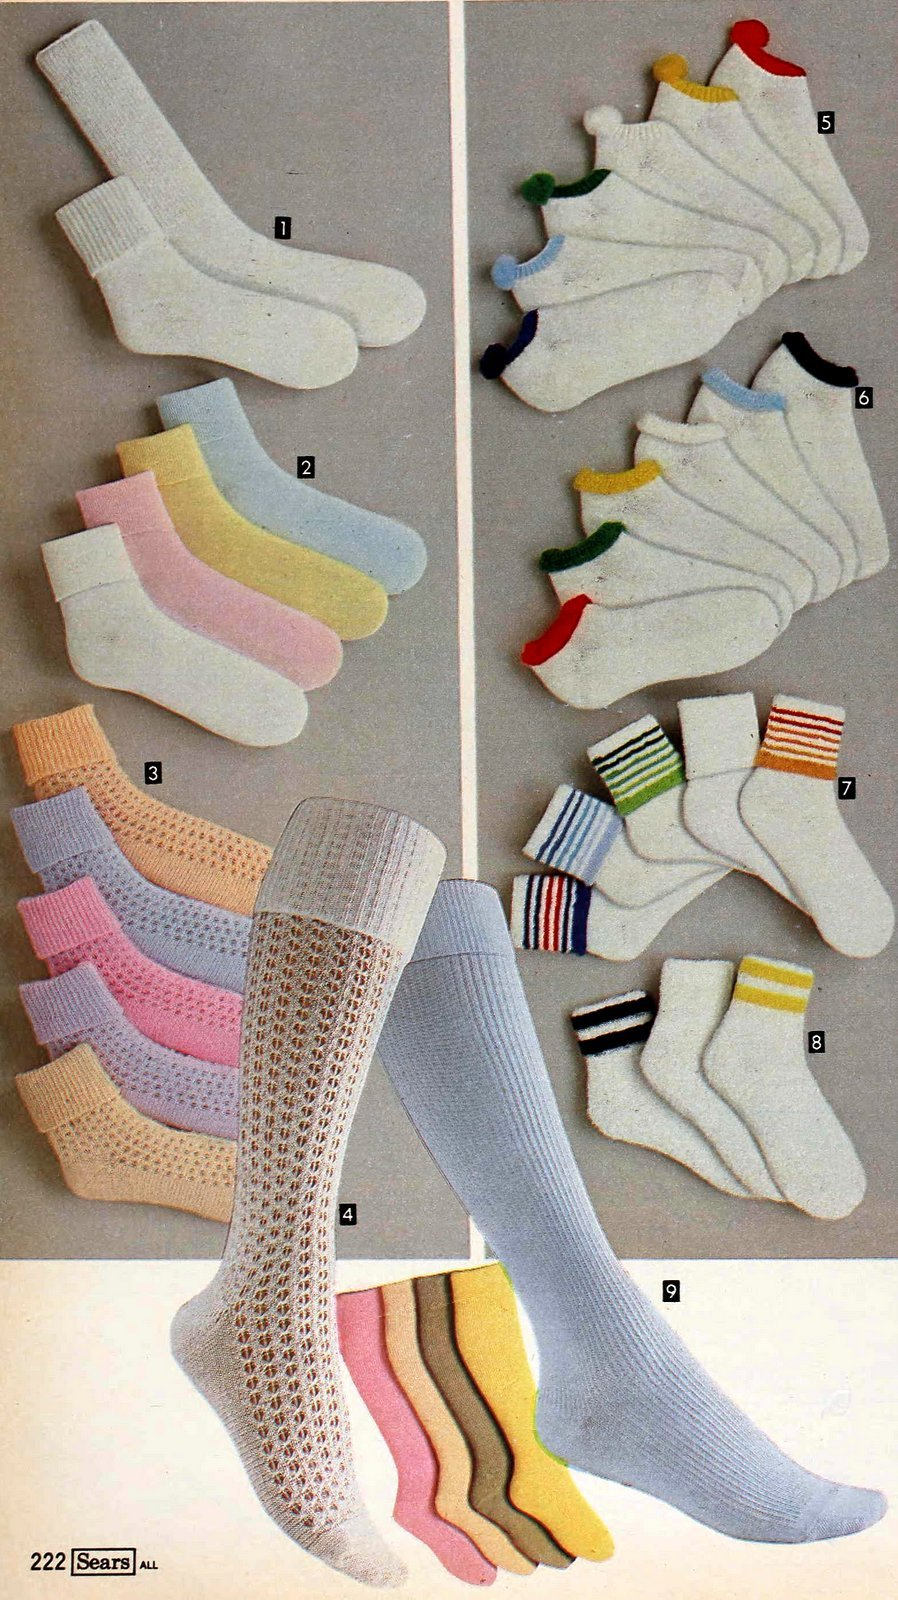 Pastel long and short socks, and socks with bright cuffs